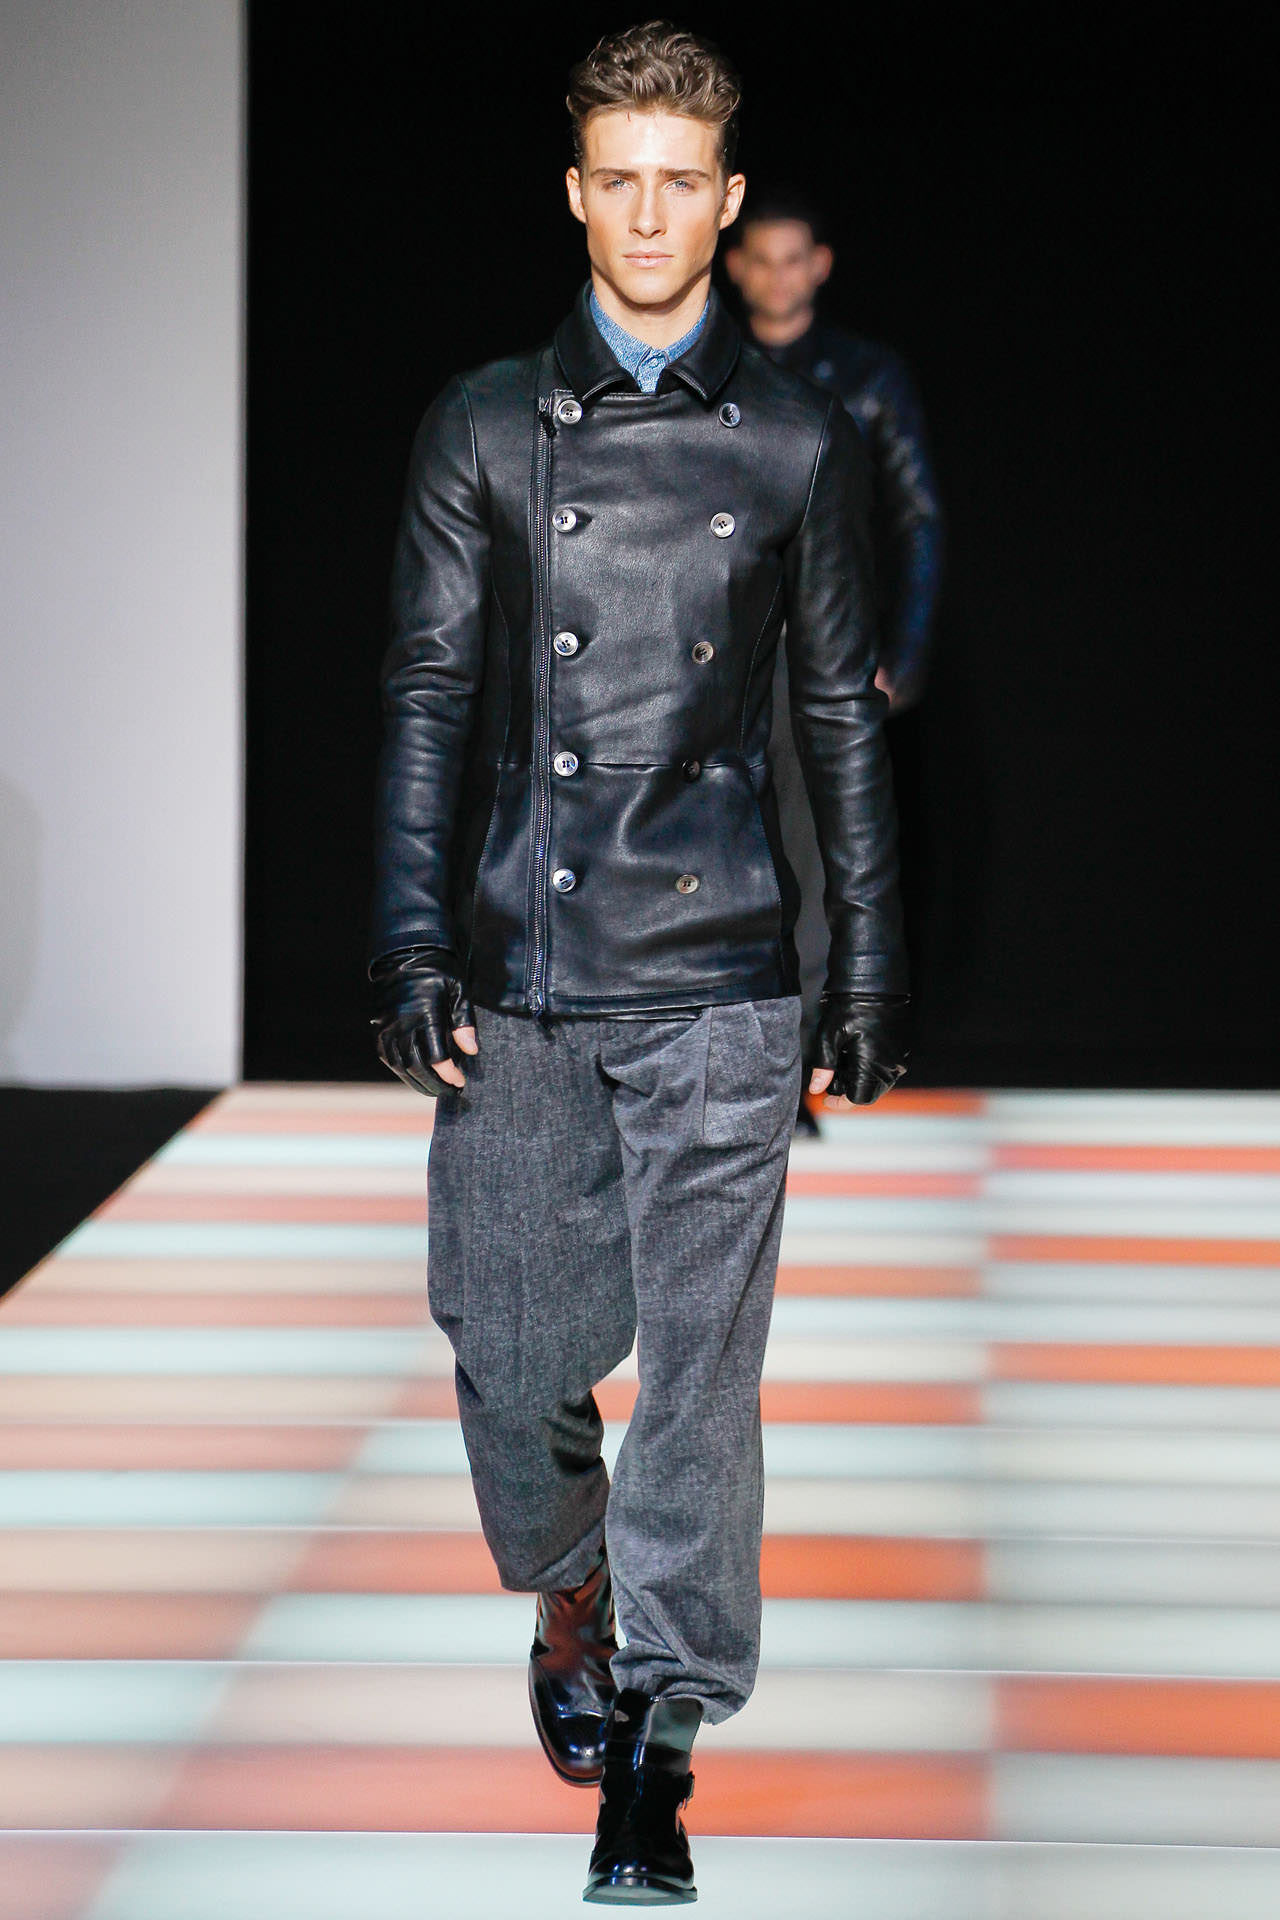 Armani fashion for men 47